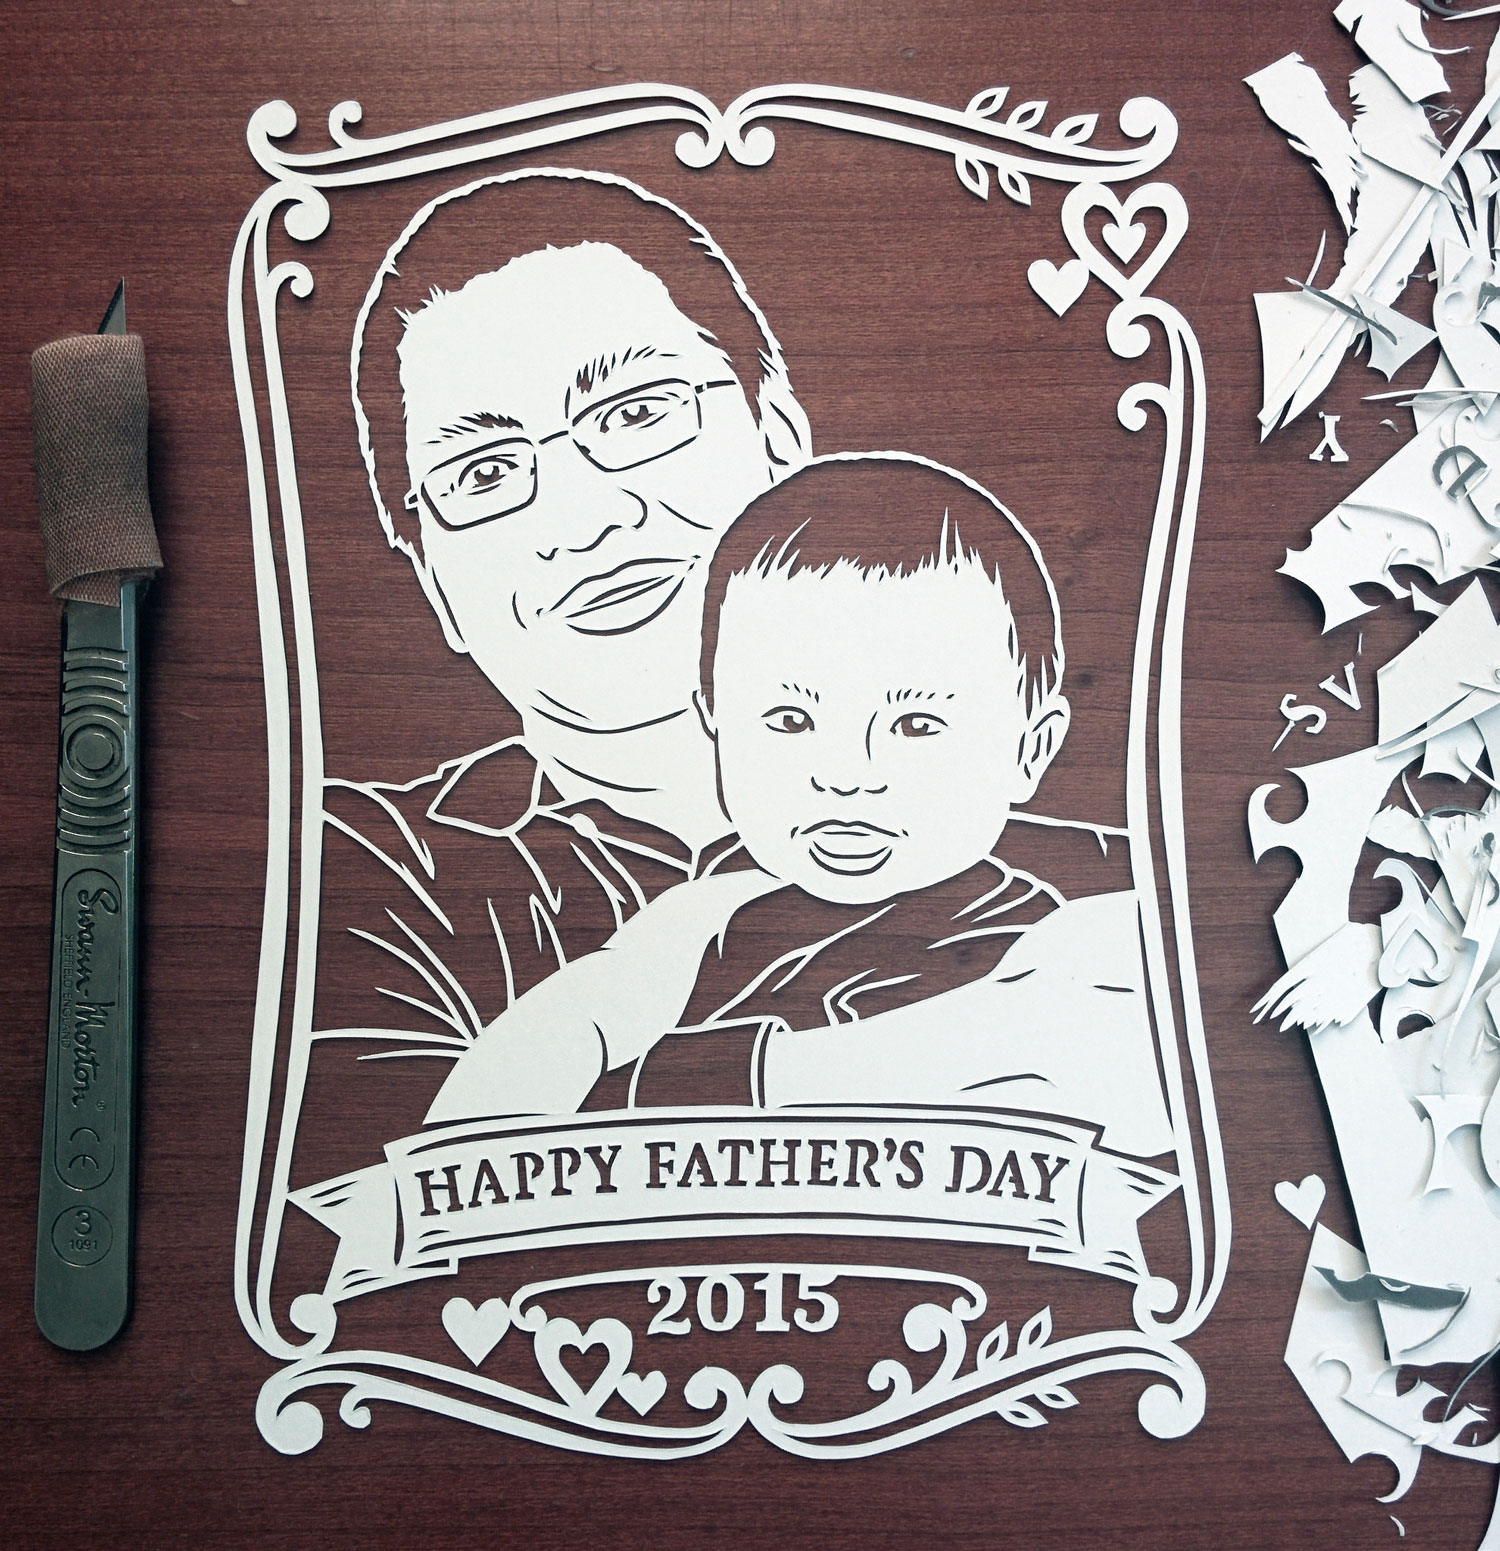 papercut portrait illustration of father and baby son